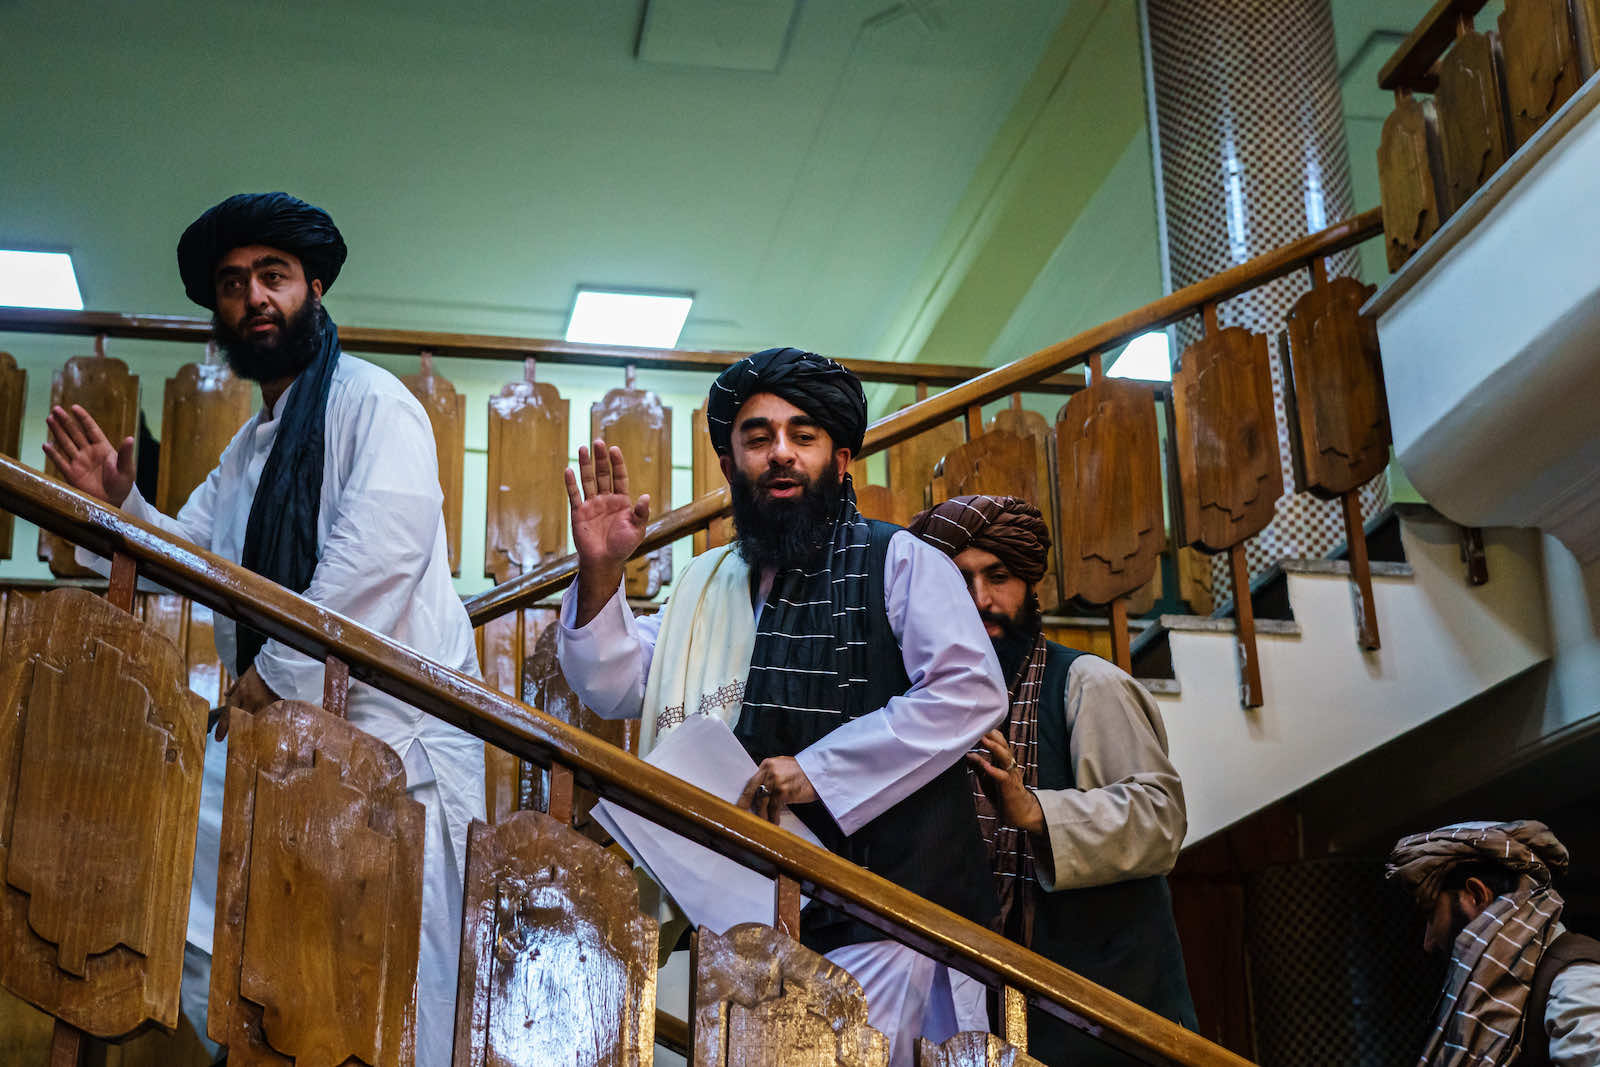 Taliban spokesman Zabihullah Mujahid makes his first-ever public appearance to address concerns about the Taliban's reputation with human and civil rights during a press conference in Kabul, Afghanistan (Marcus Yam/Los Angeles Times via Getty Images)